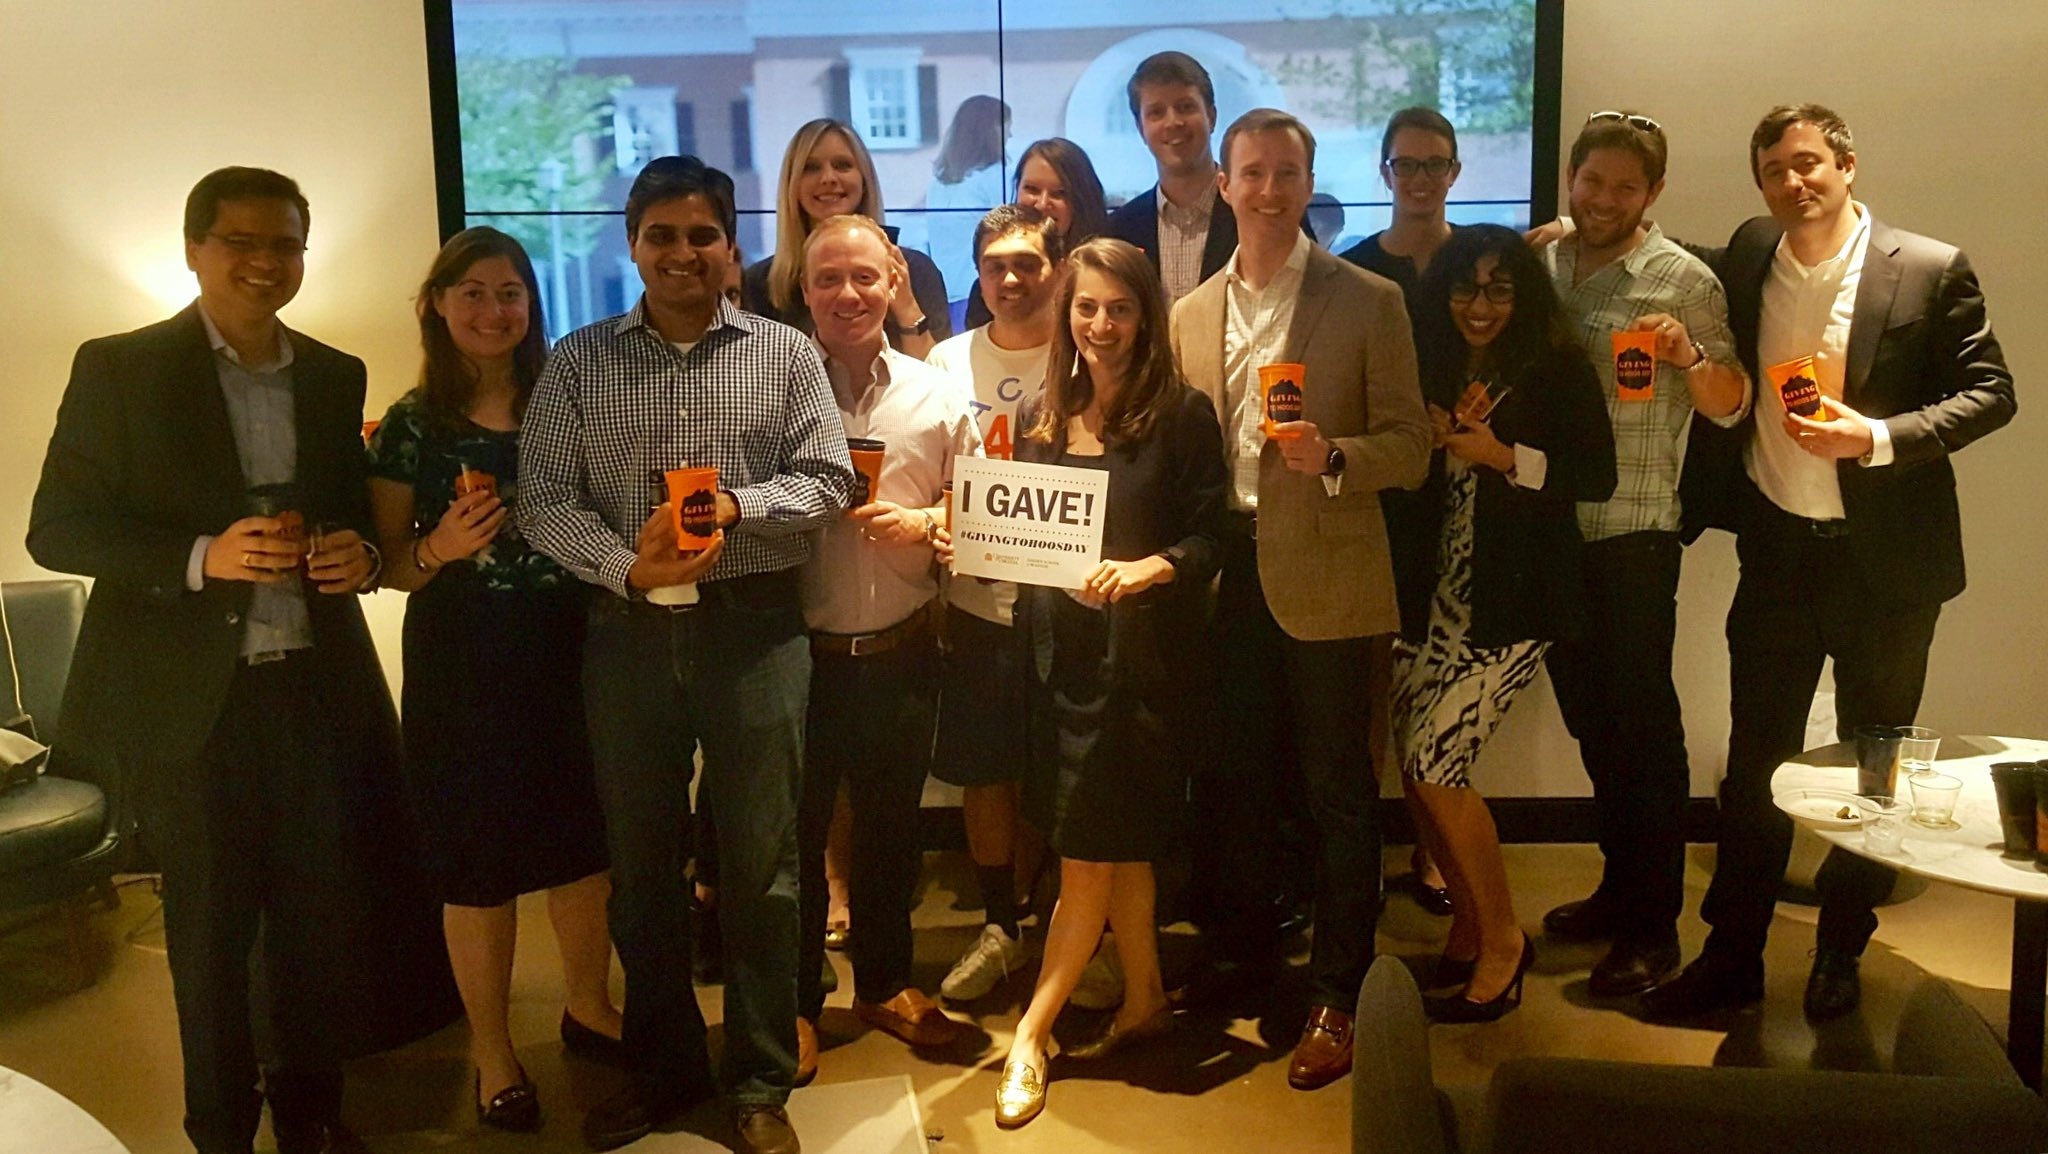 And the #GivingToHoosDay fun continues! Darden 2011 alums gathered in NYC for a night of camaraderie hosted by Reg Jones and Liz Brower! https://t.co/RGGp2cKVgK